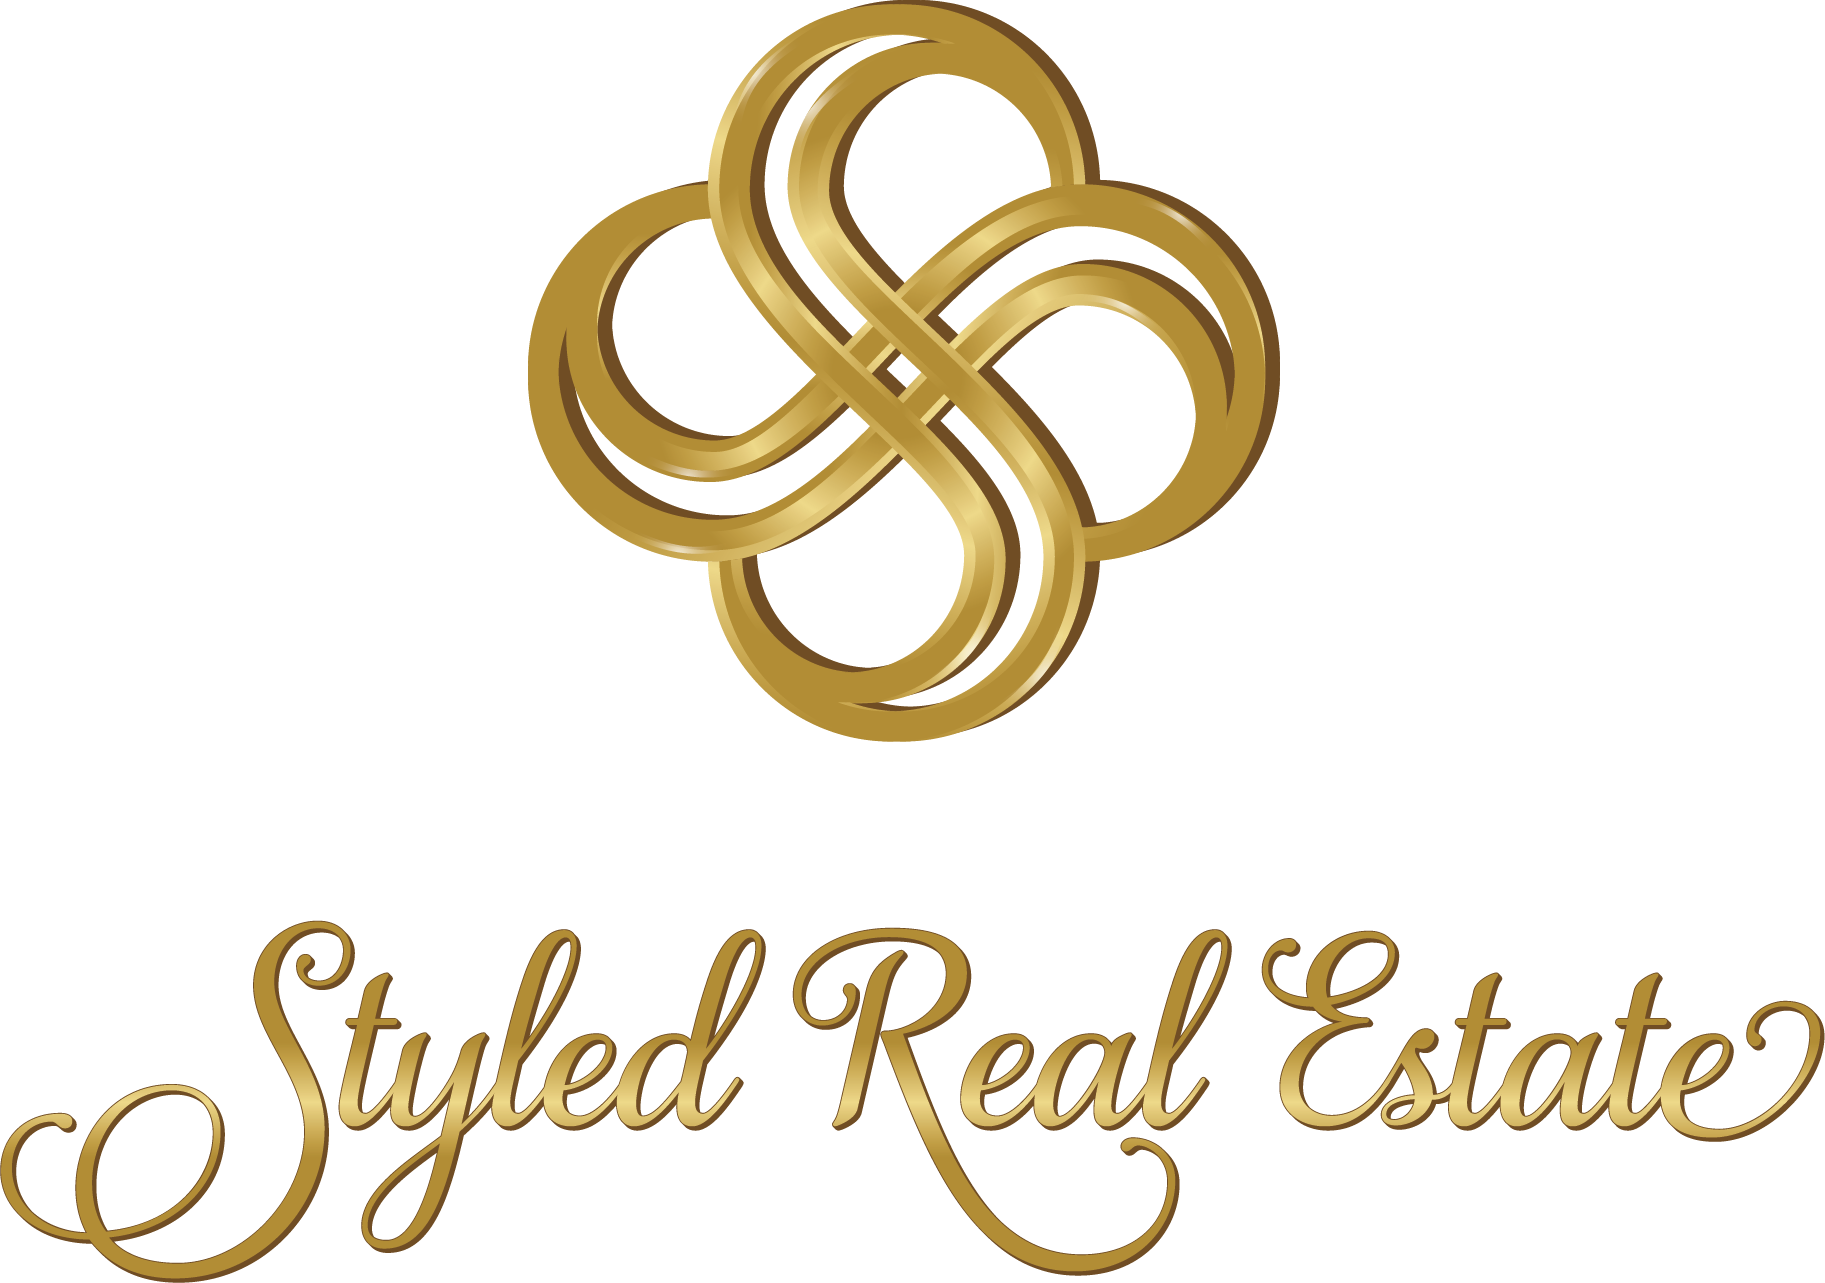 Styled Real Estate